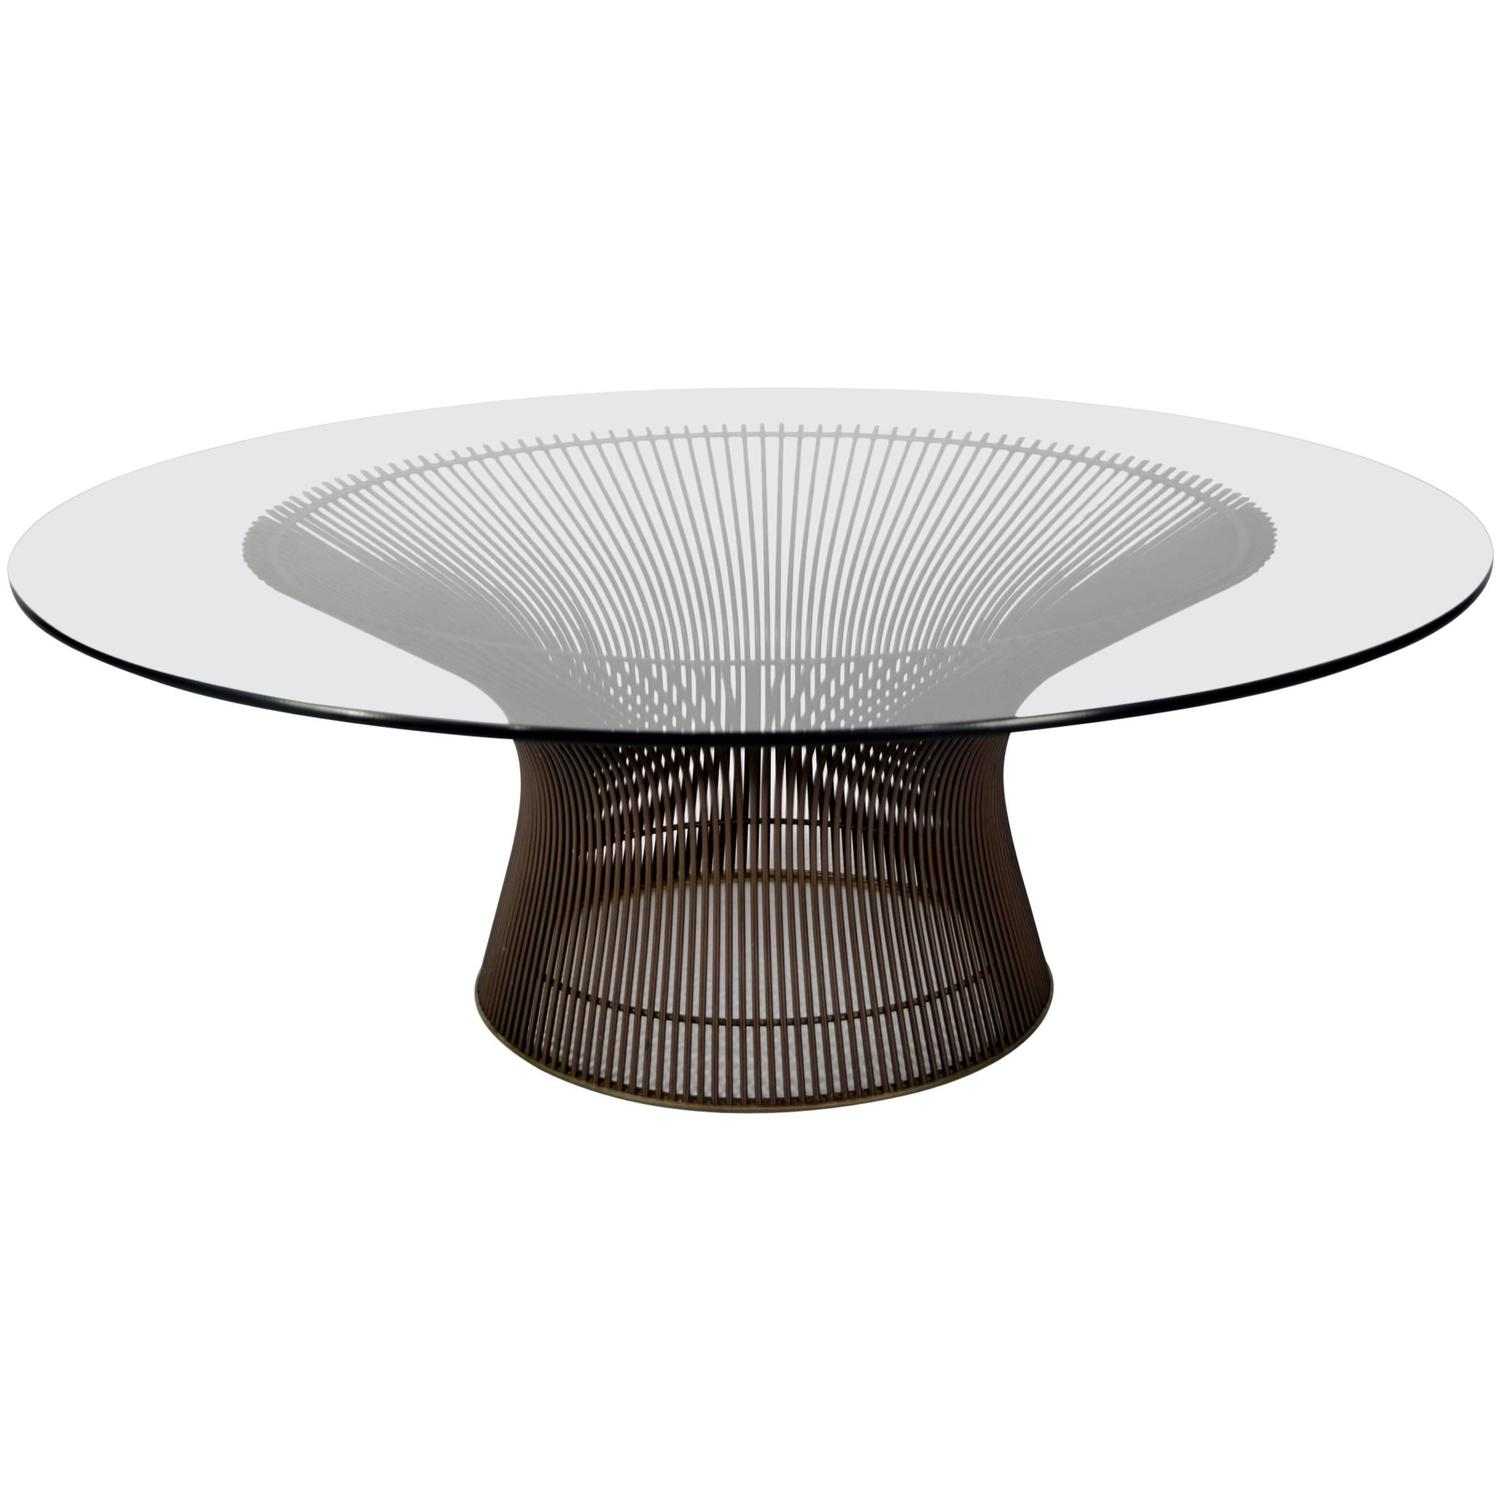 Warren platner bronze finish coffee table at 1stdibs for Warren platner coffee table